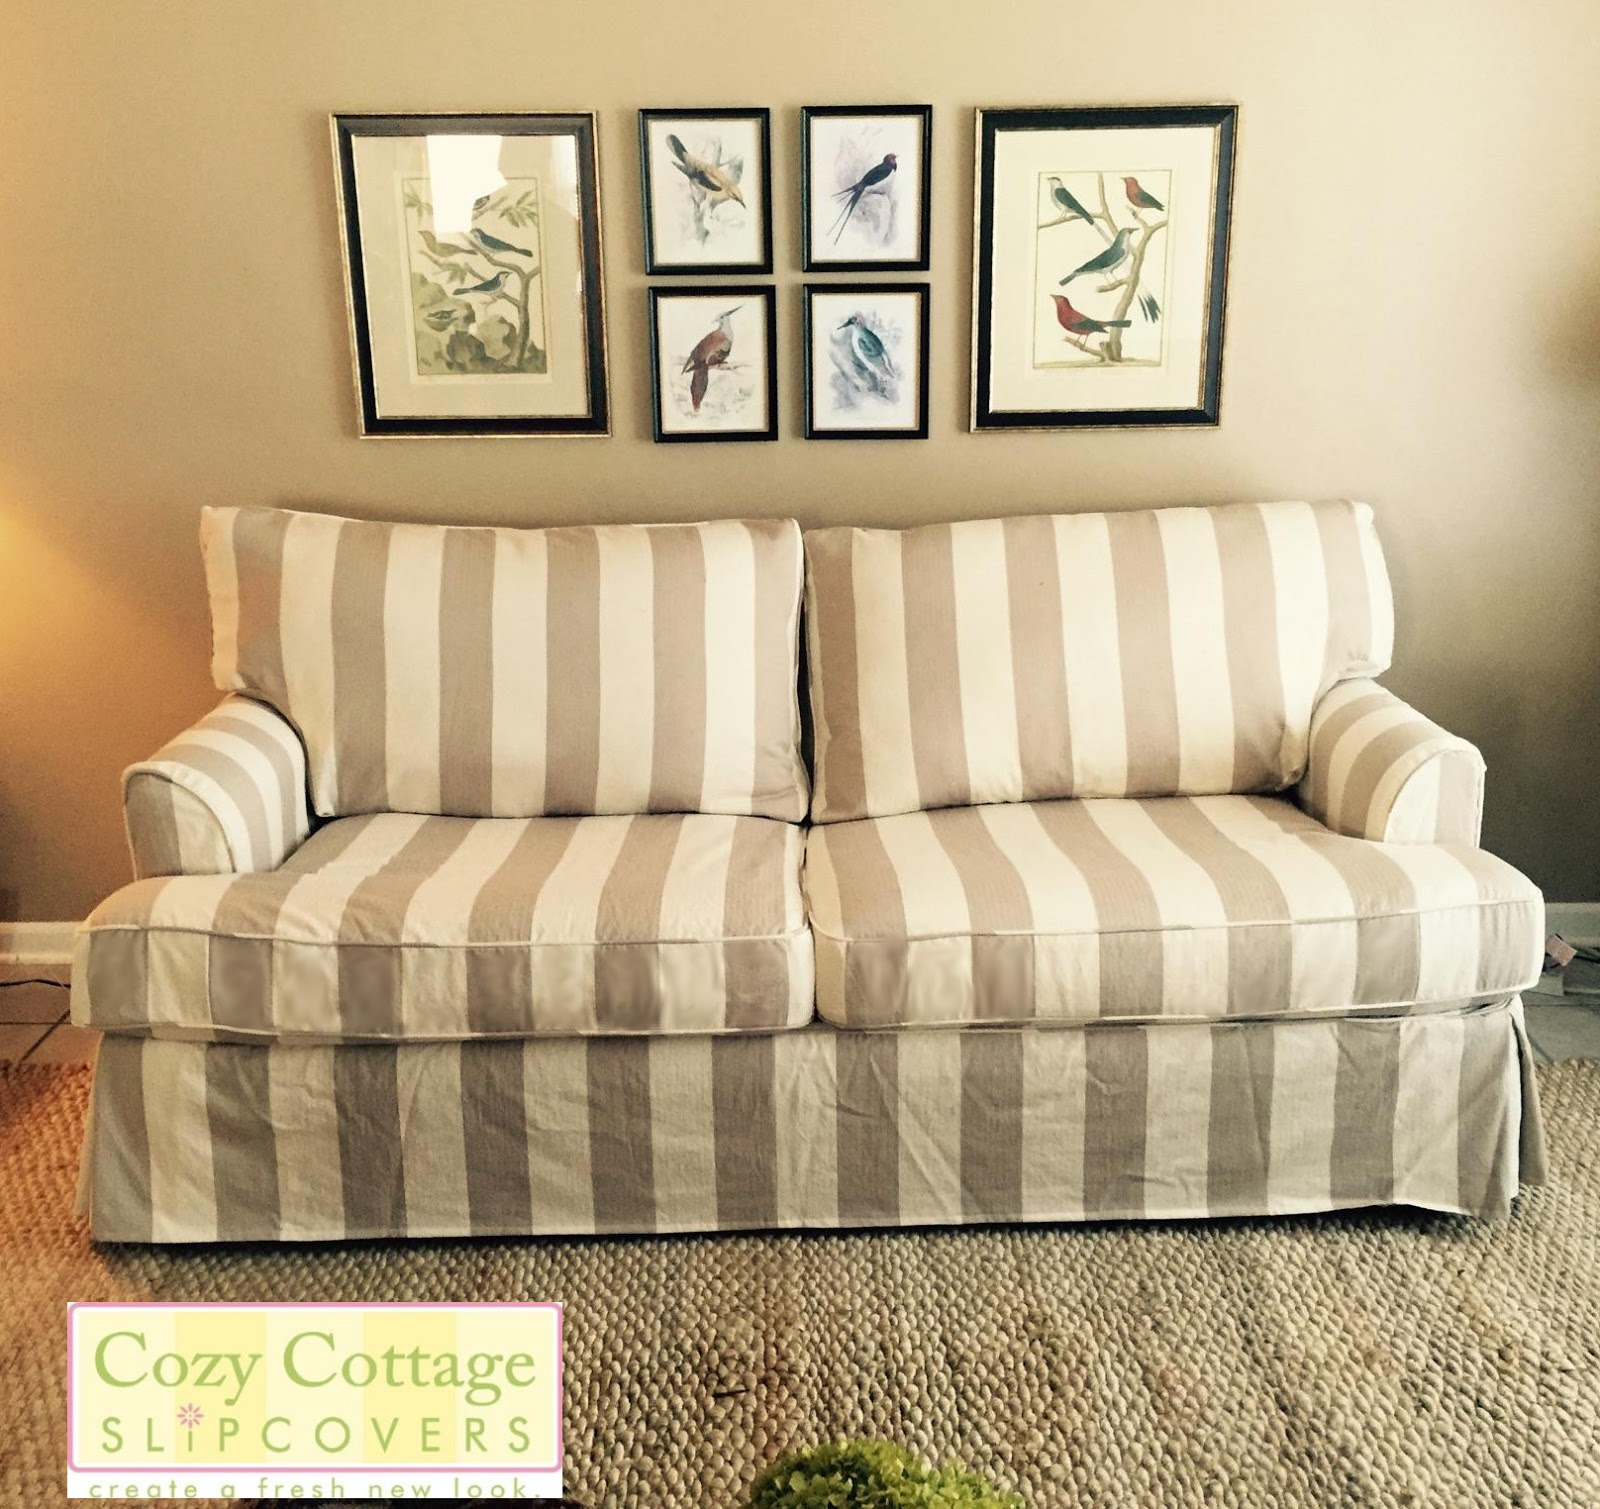 Navy Blue Pet Sofa Cover Cama Homecenter Colombia Striped Slipcovers For Sofas Design Cottage